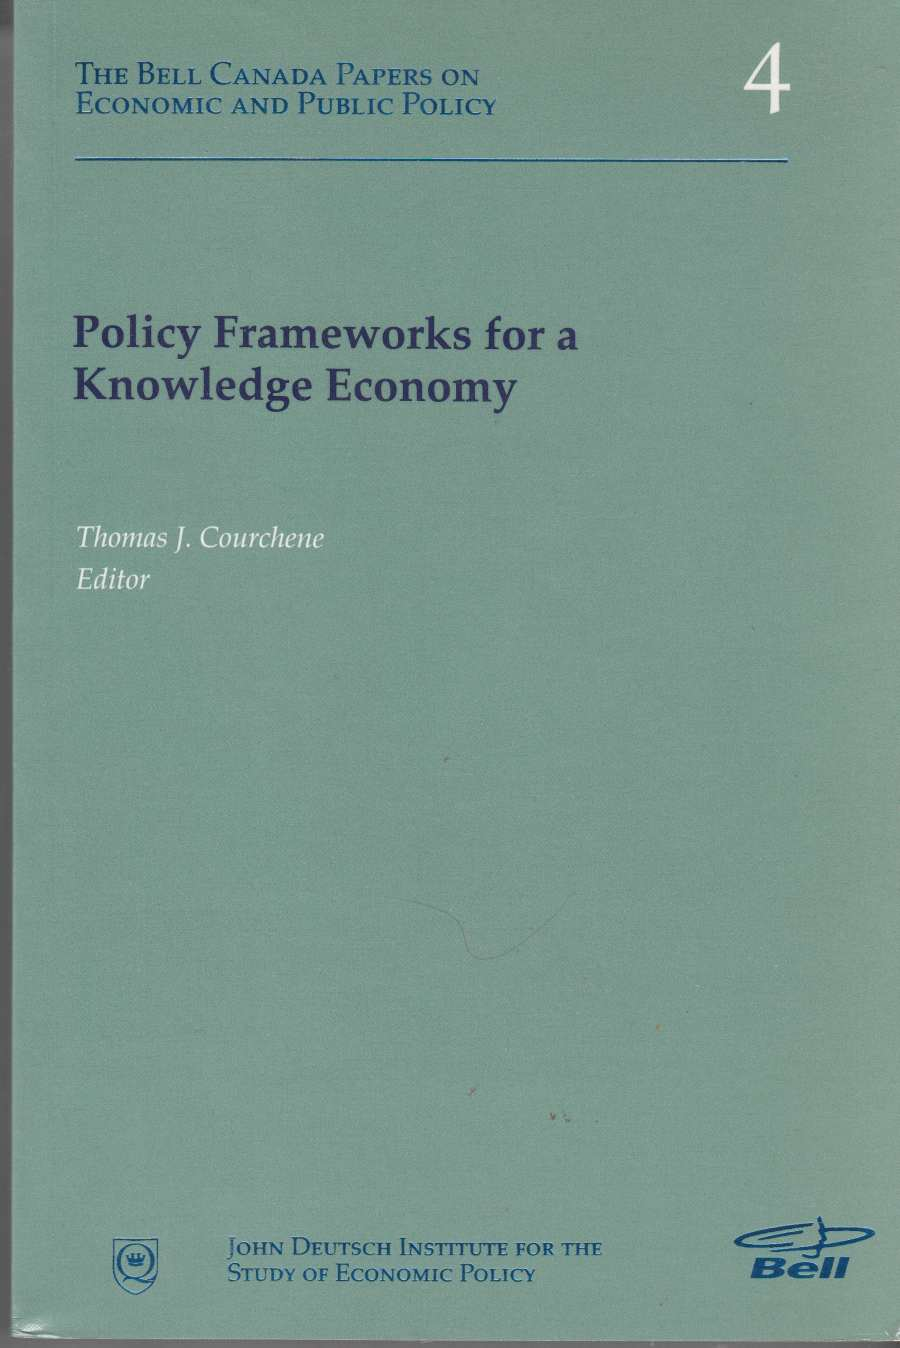 Image for Policy Frameworks for a Knowledge Economy